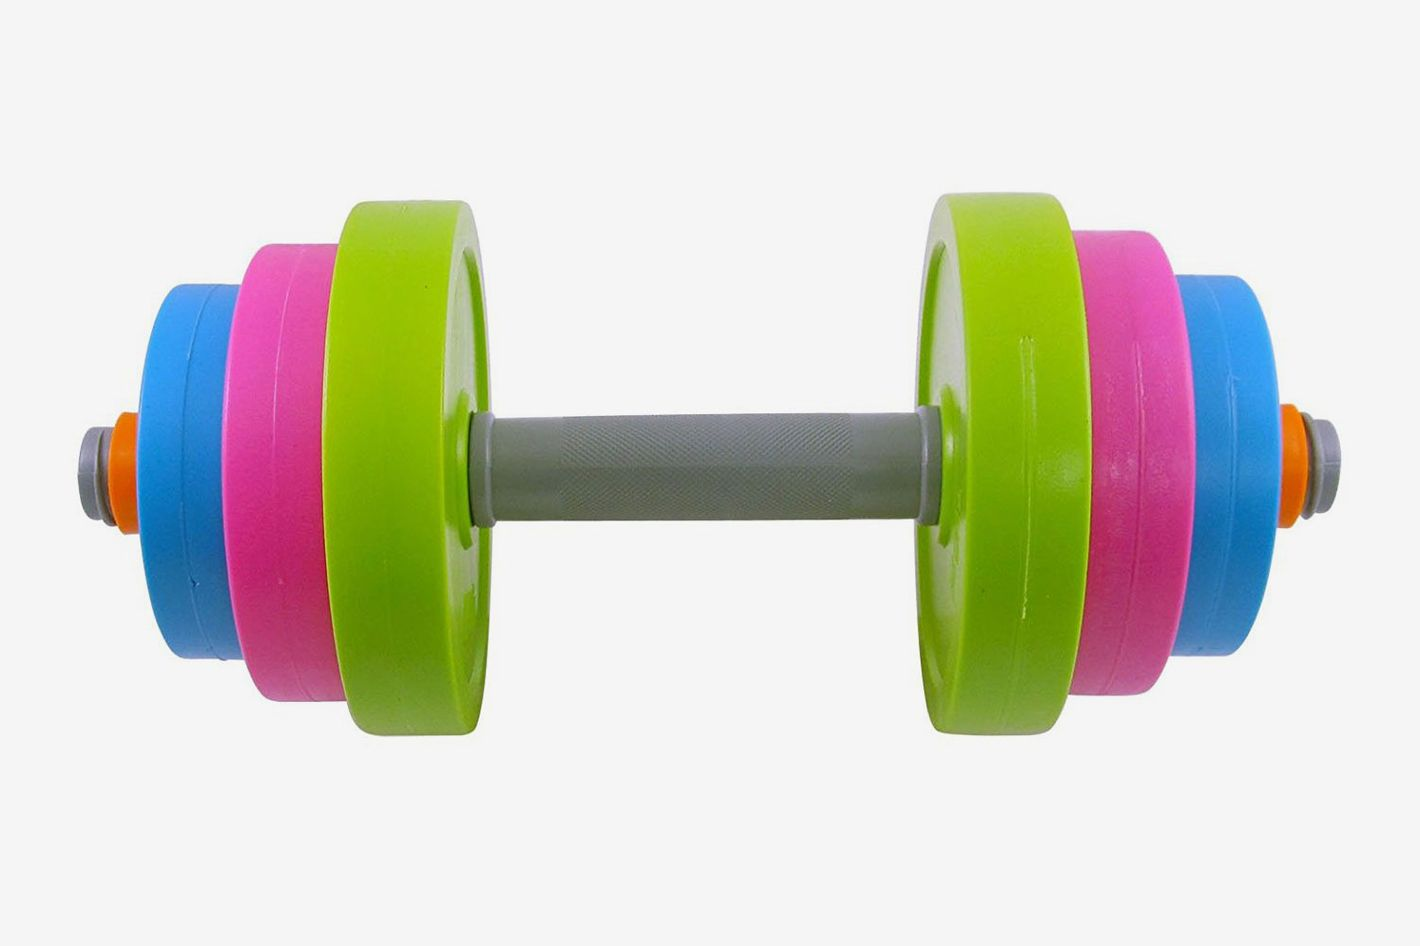 Liberty Imports Adjustable Dumbbell Toy Set for Kids